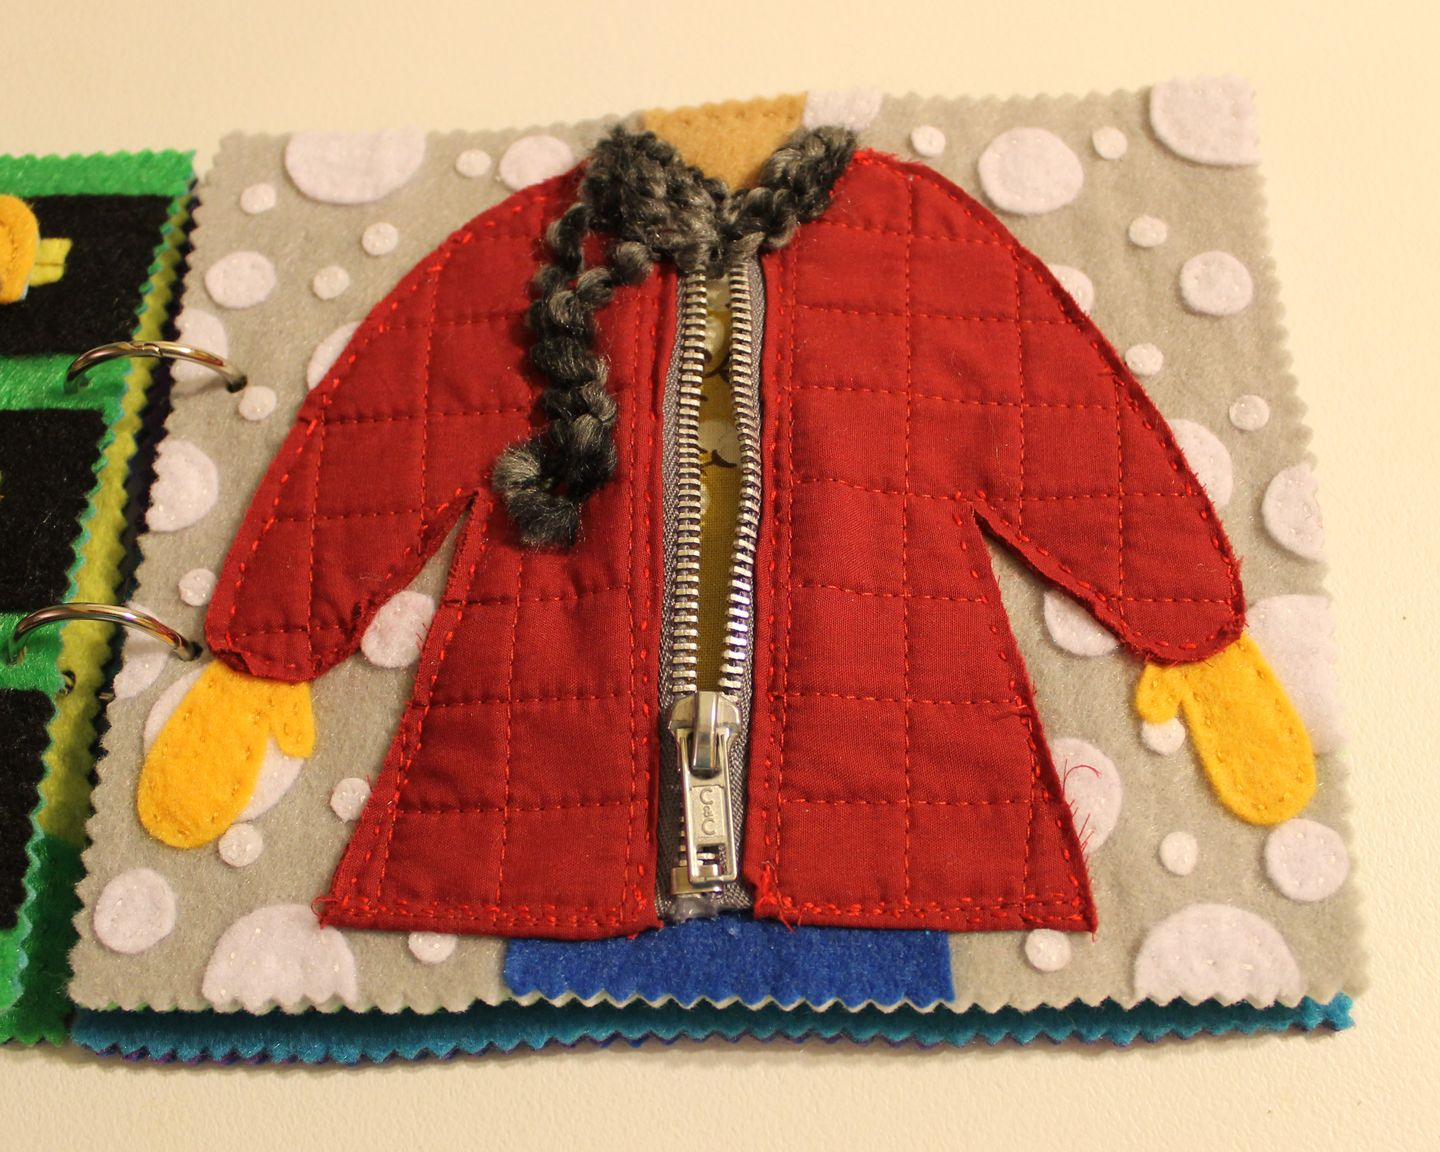 Here's a little something I've been working on lately. Another Quiet Book for a little girl named Juniper, but this time I attempted some moving parts. (These pictures aren't very good, but they co...